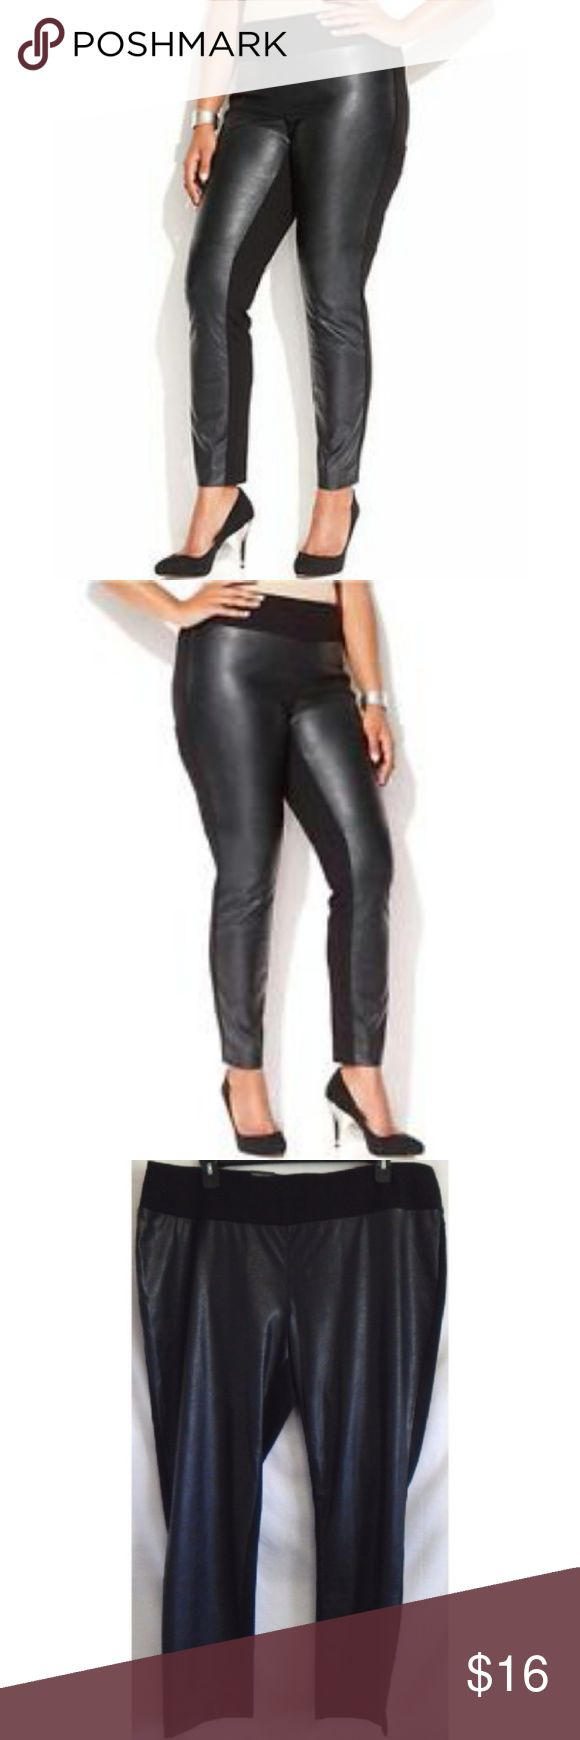 *MEGA SALE* INC Faux Leather Pants NWT $70 24W INC Sexy Faux Leather Skinny Pants 24W NWT $70 Black faux leather skinny pants. Soft faux leather and ponte back. Classic rise sits on natural waist. Stretch pants elastic waistband. 65% rayon /30% nylon 5% spandex. Machine wash. NWT $69.50 Size: 24W  BUY 3 or More and Get 20% OFF!!! INC International Concepts Pants Skinny